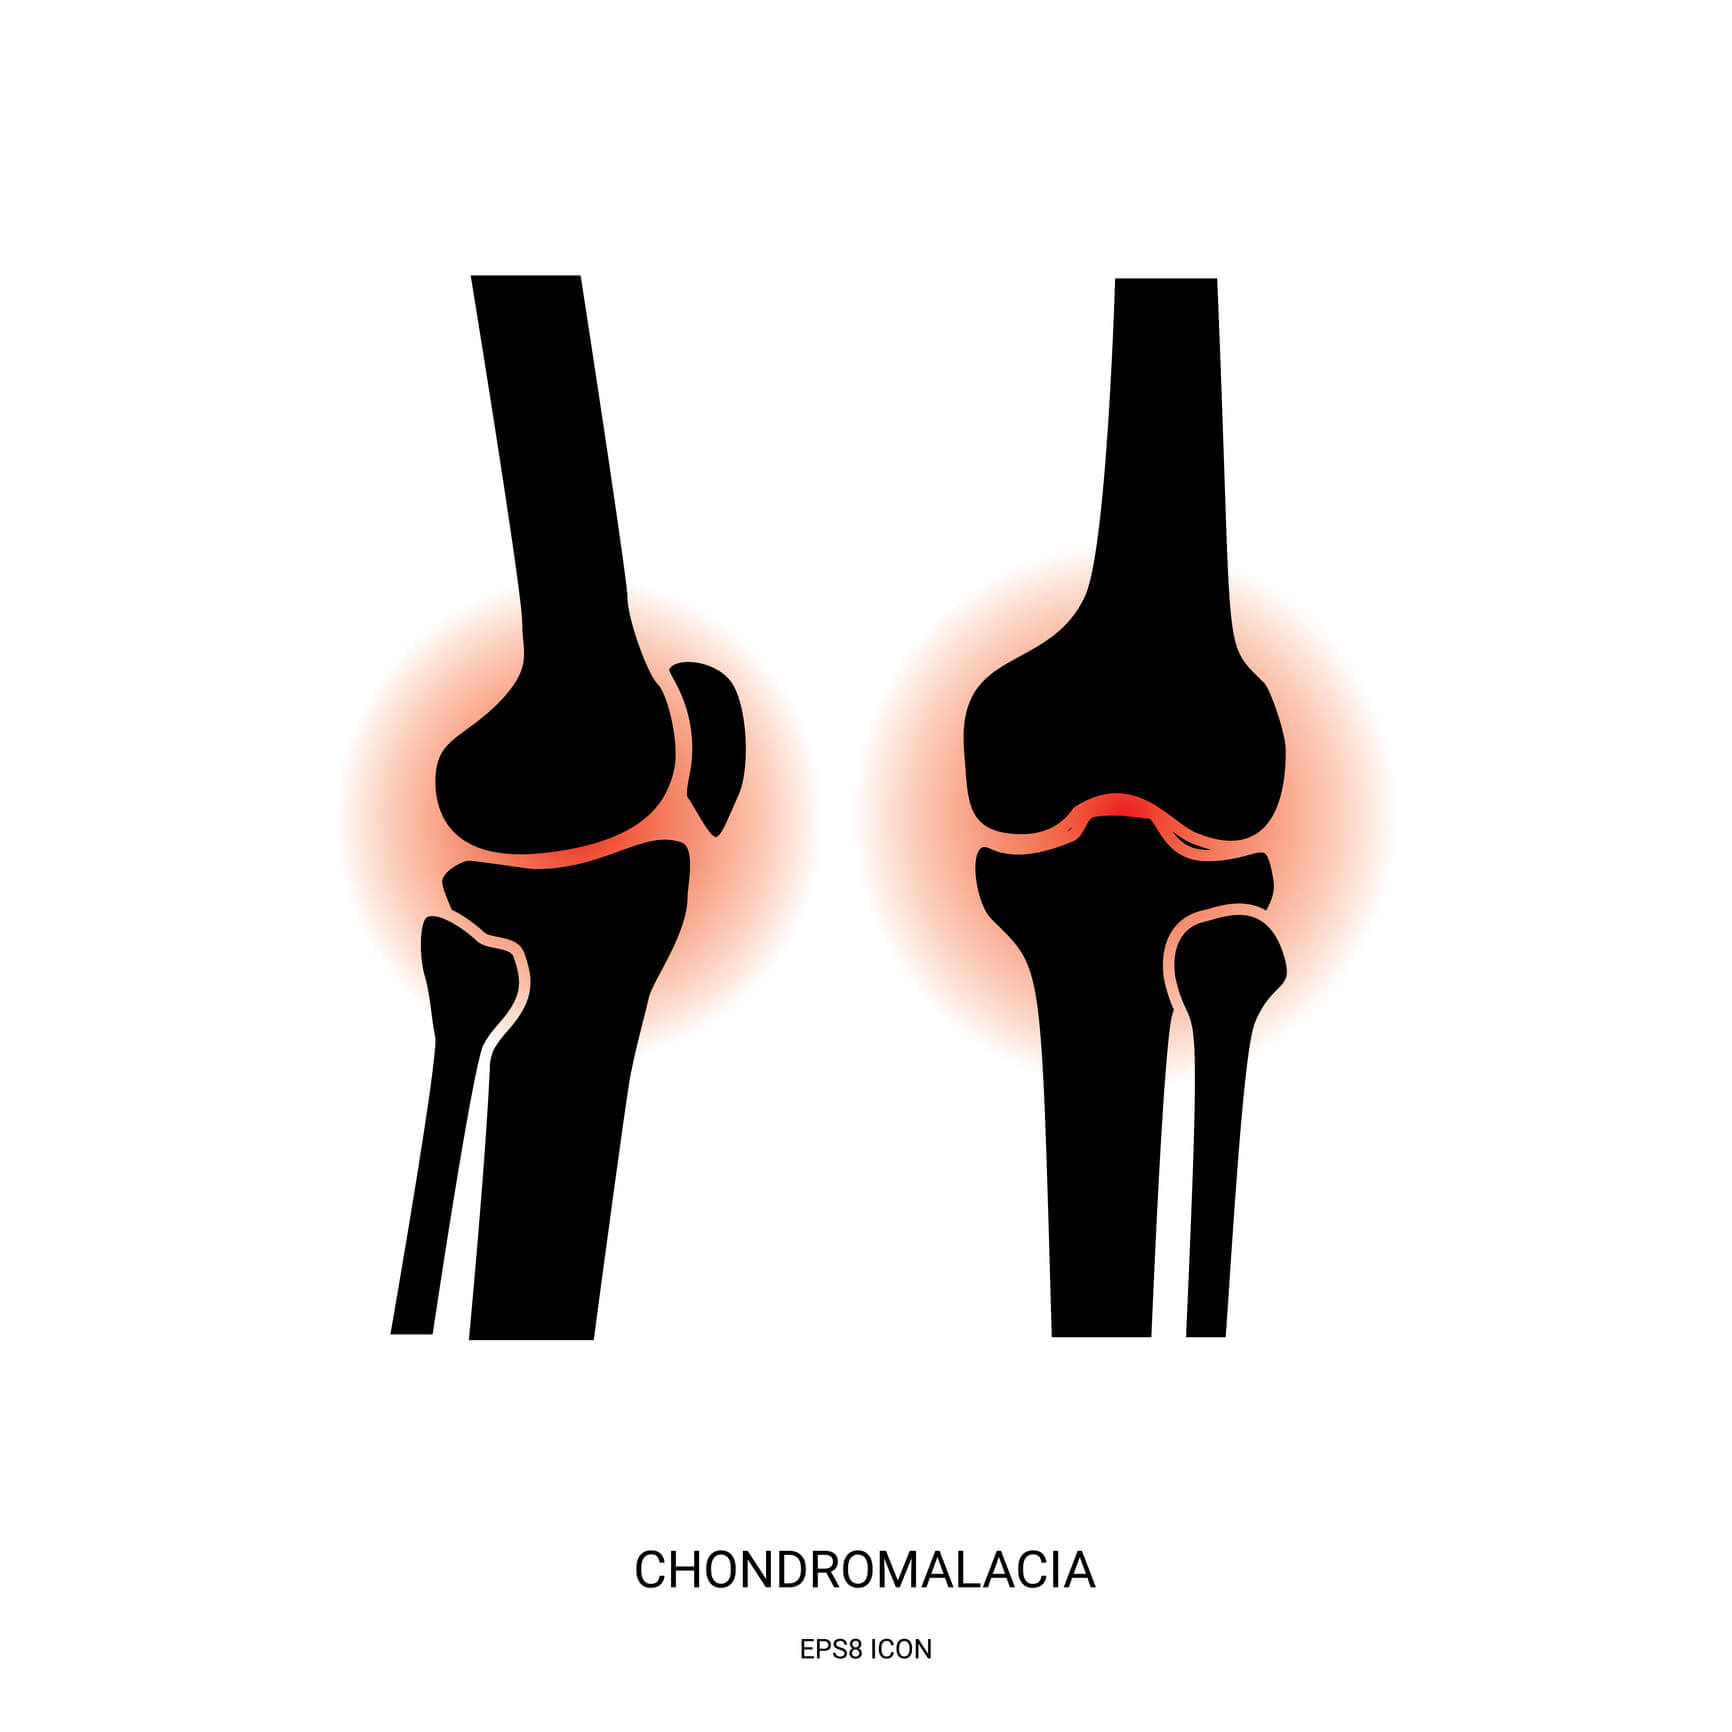 Medical Image of a knee affected by Chondromalacia